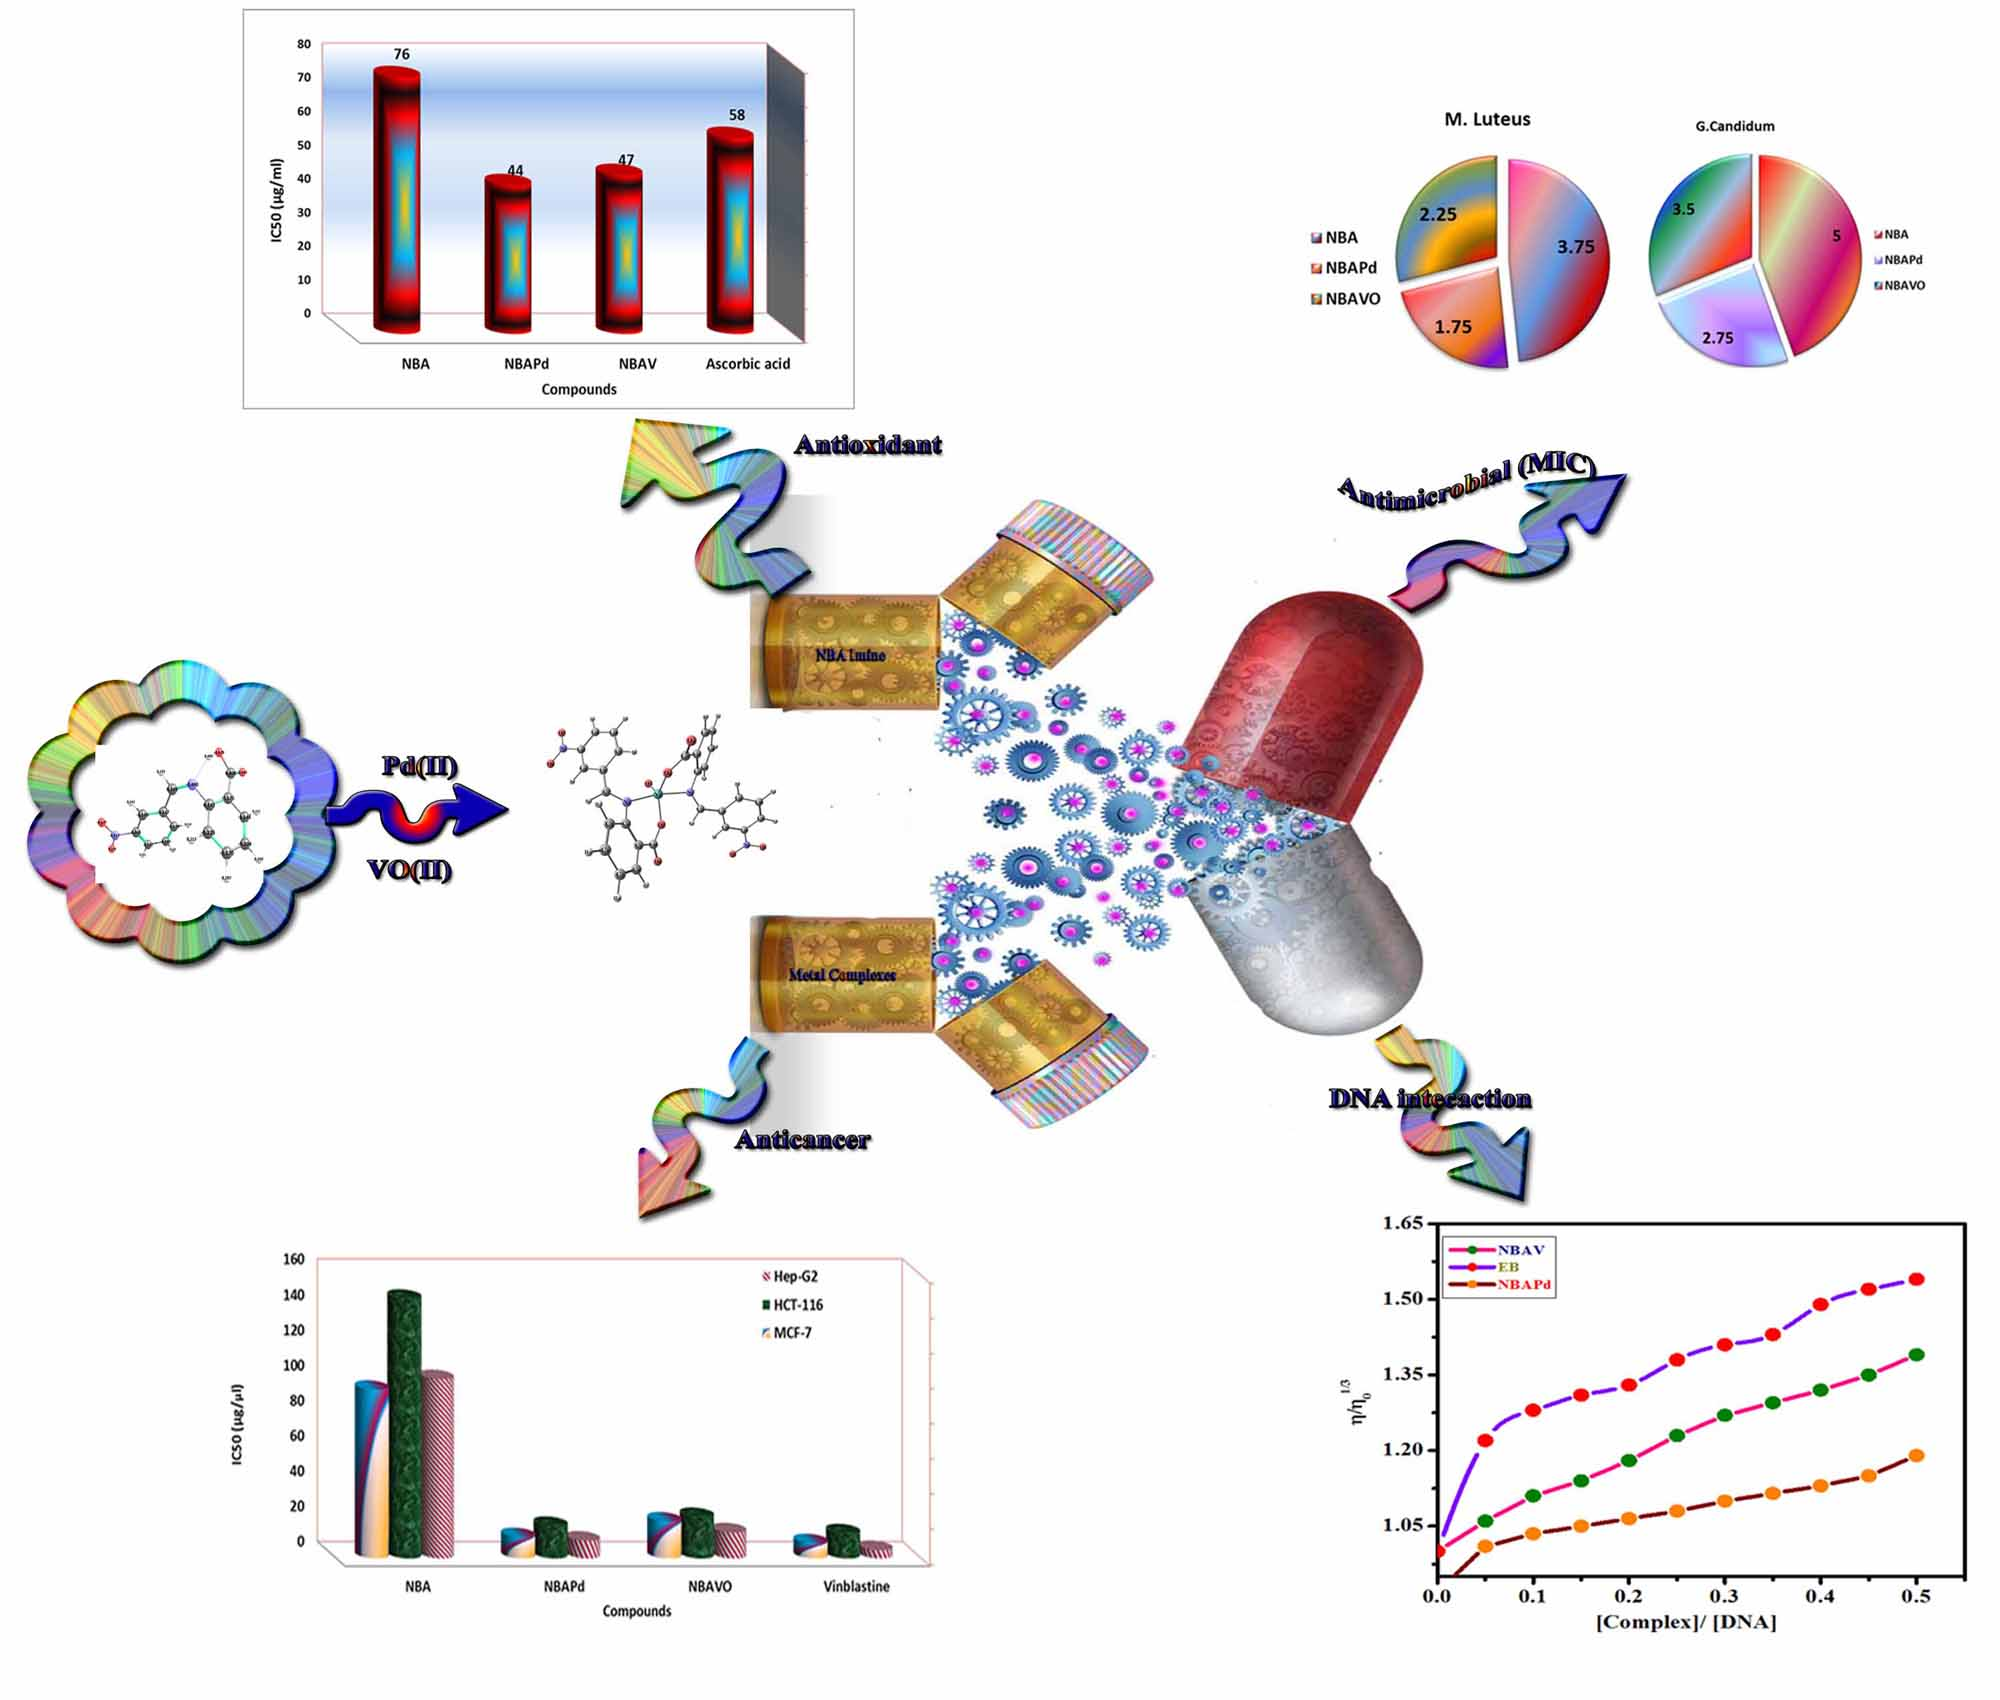 Novel Azomethine Pd(II) and VO(II)  Based Metallo-Pharmaceuticals as Anticancer, Antimicrobial and Antioxidant  agents:  Design, Structural inspection,  DFT investigation and DNA interaction